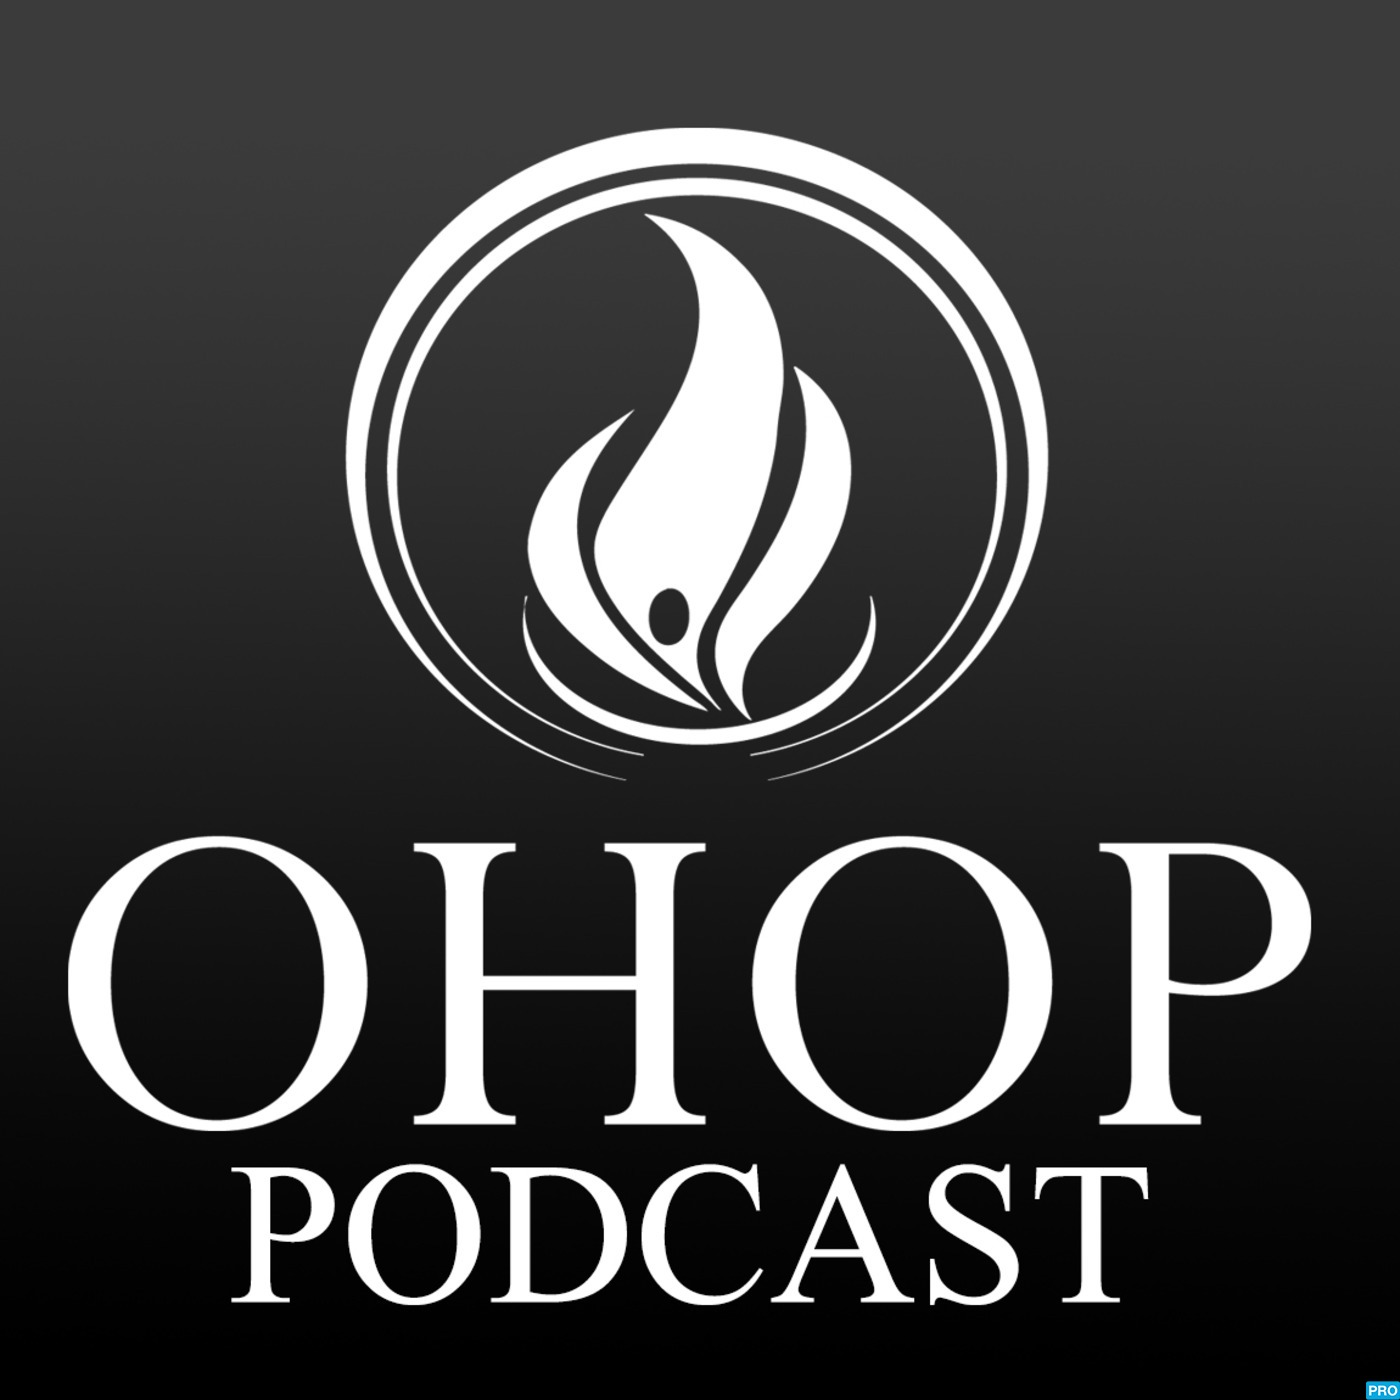 Orlando House of Prayer Podcast